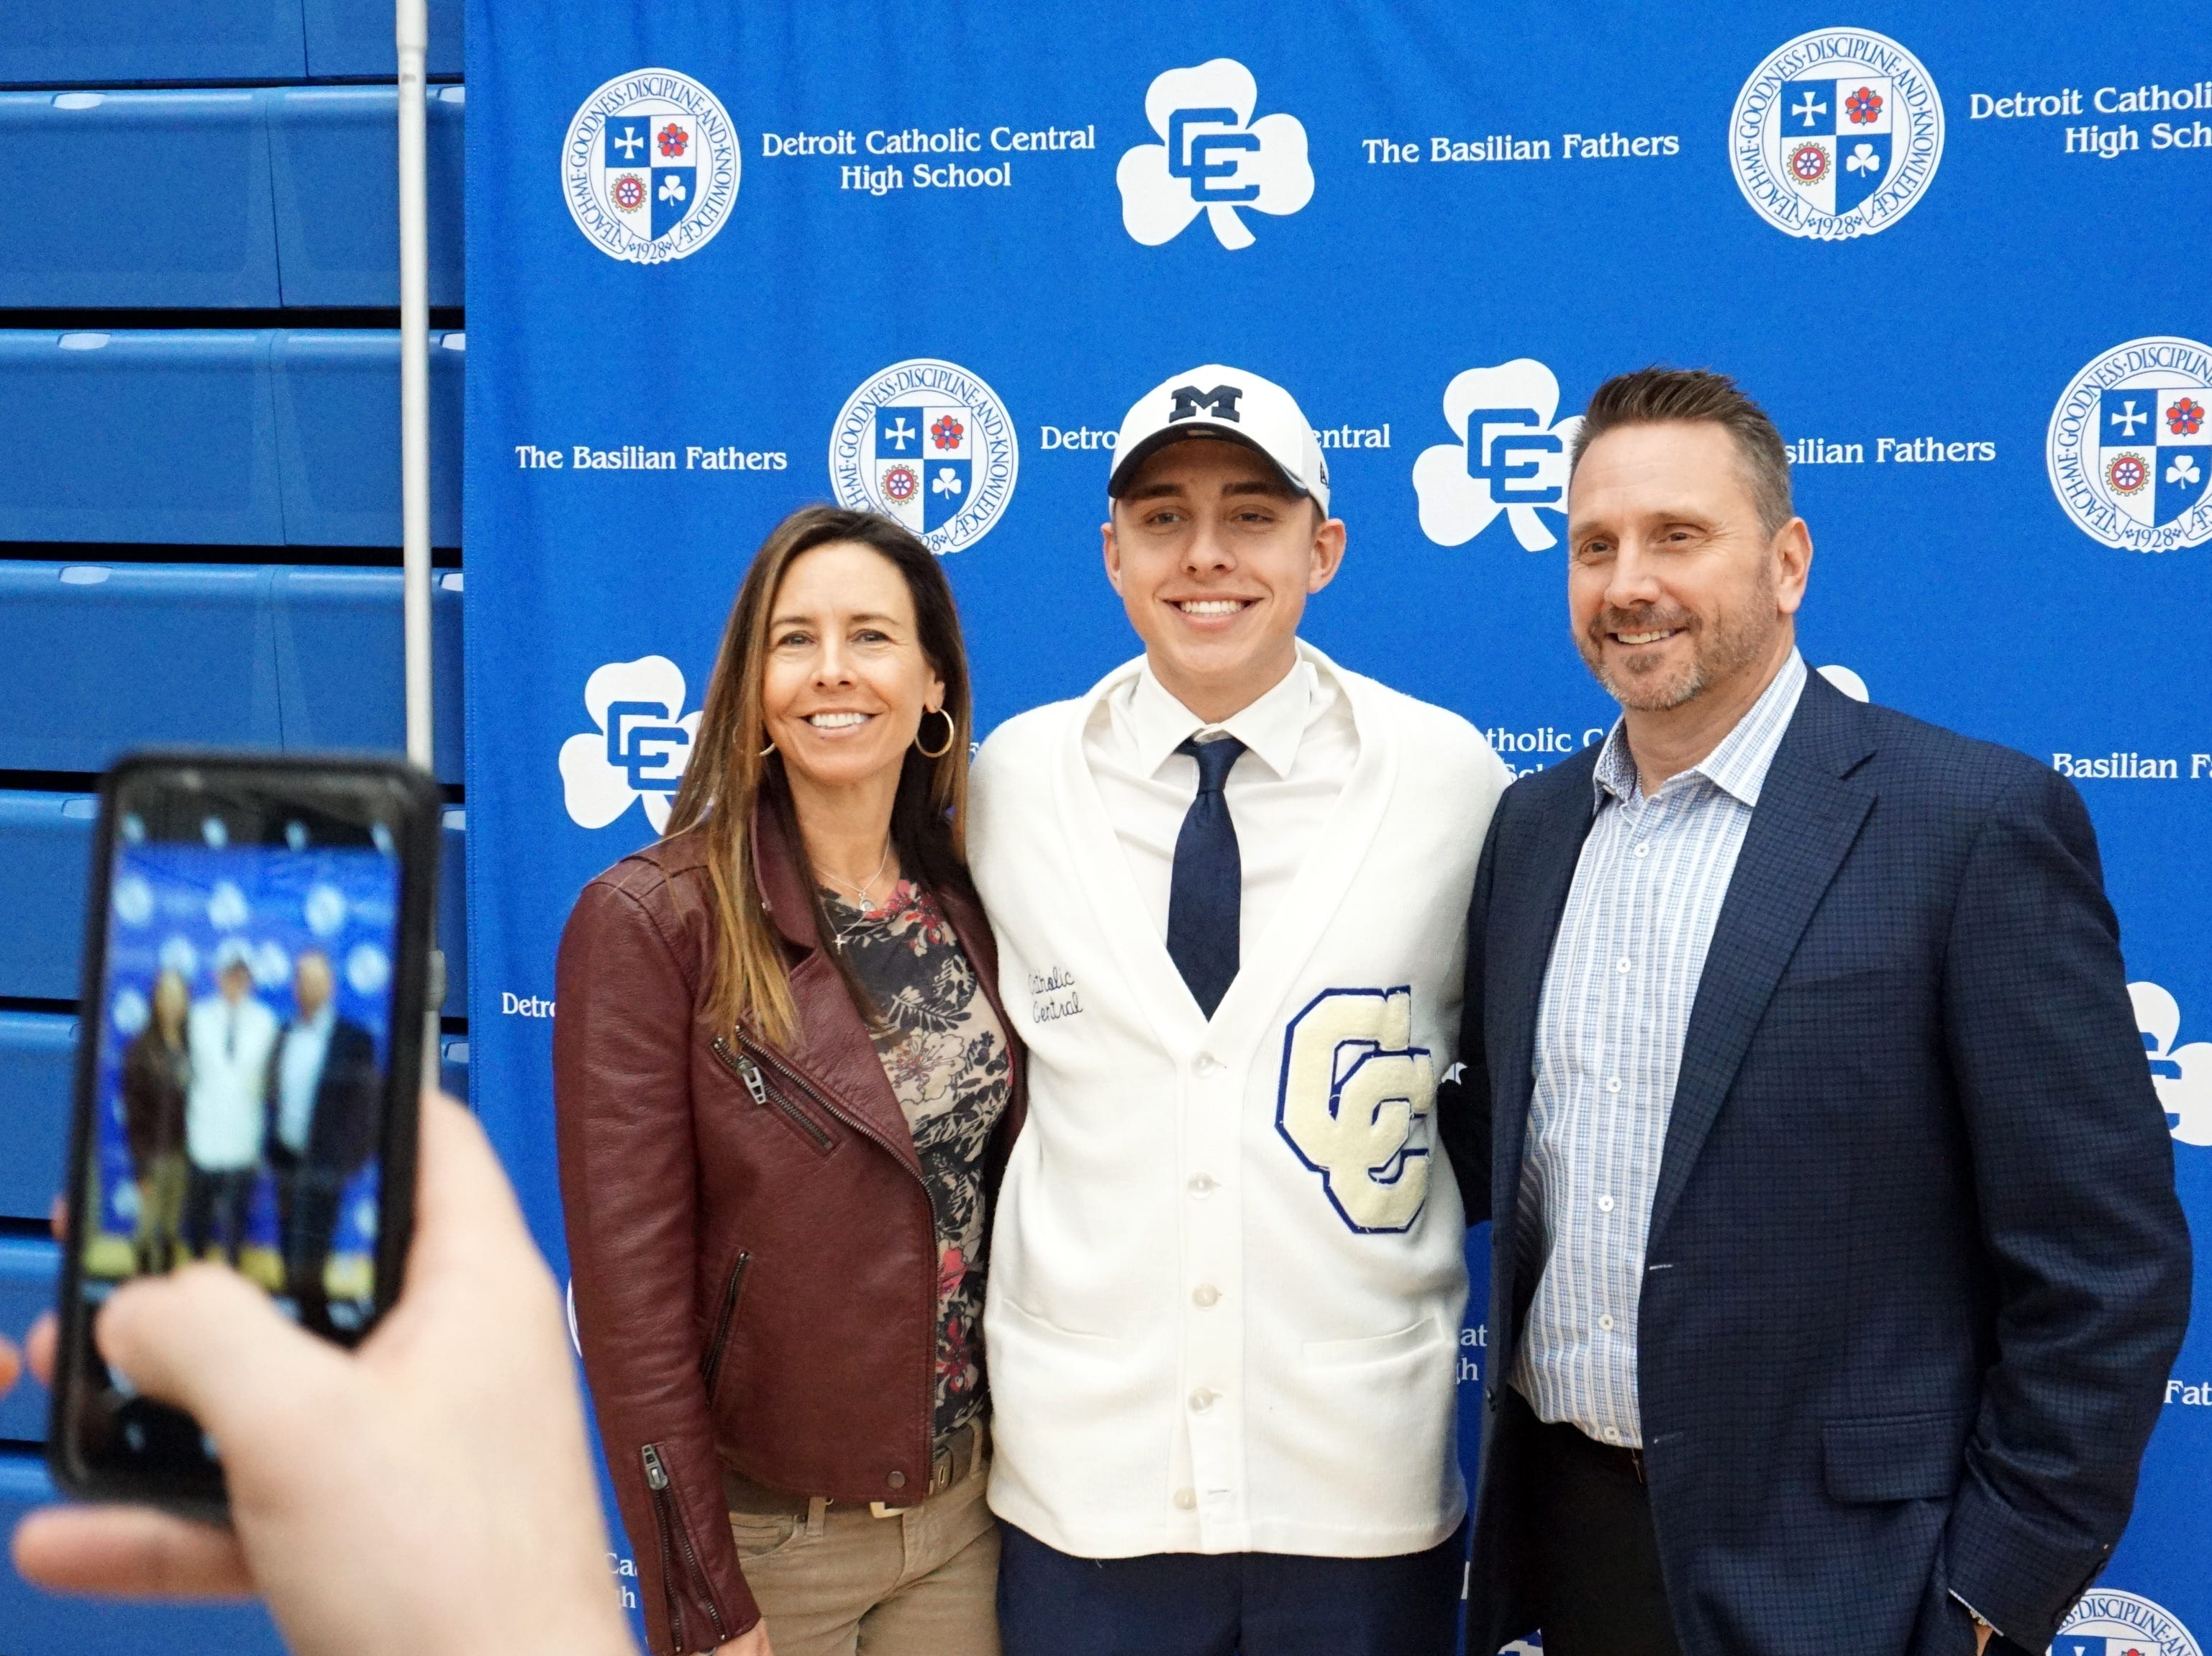 Owen Finnerty, off to play soccer at Univeristy of Michigan, poses for a photo with his parents Denise and Bryan on Feb. 7.